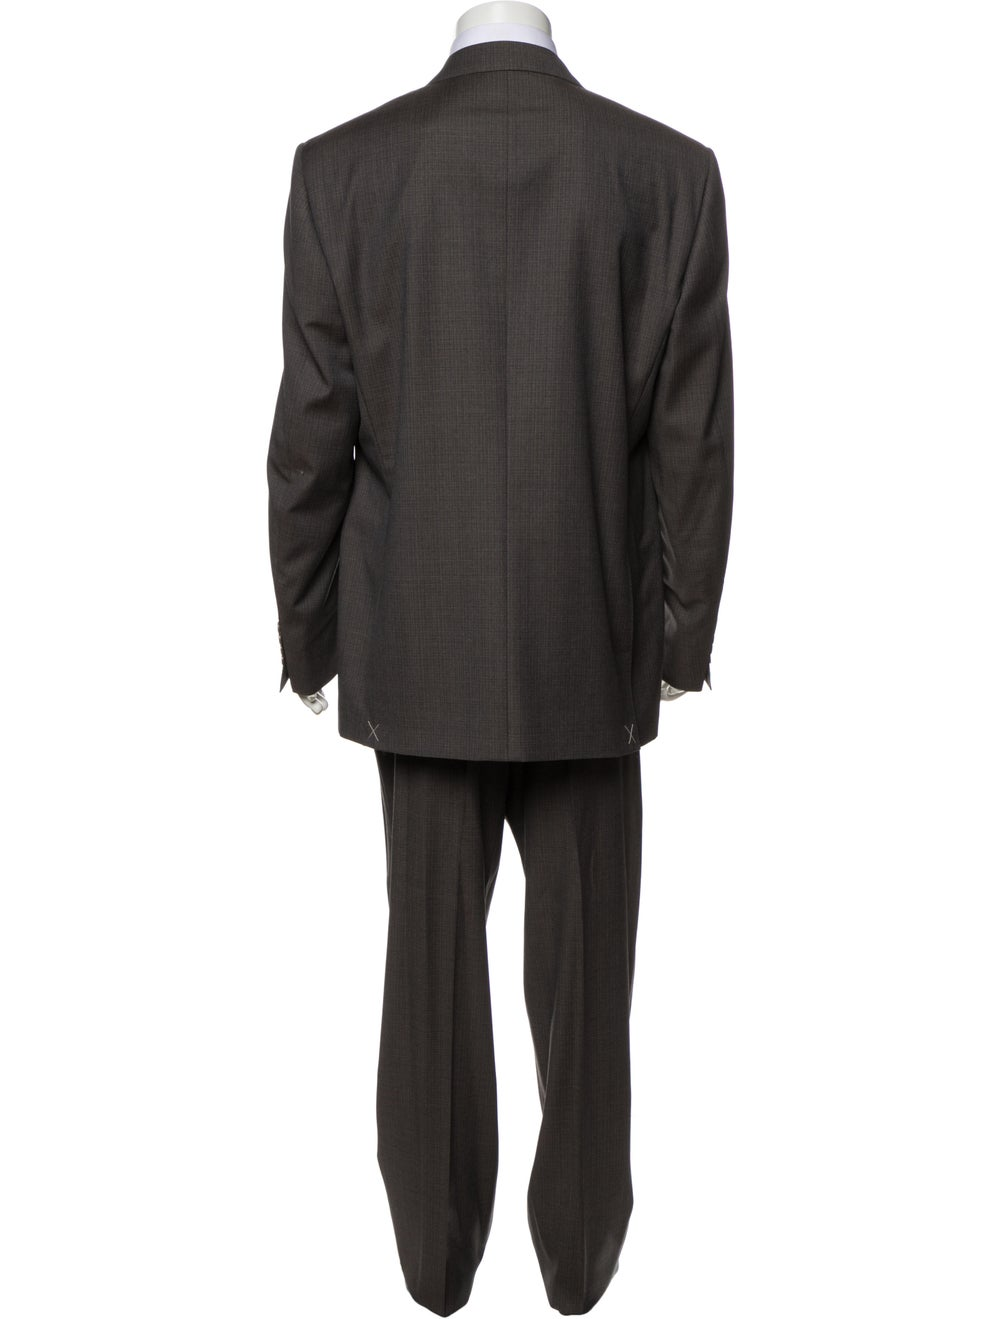 Canali Wool Two-Piece Suit w/ Tags Wool - image 3